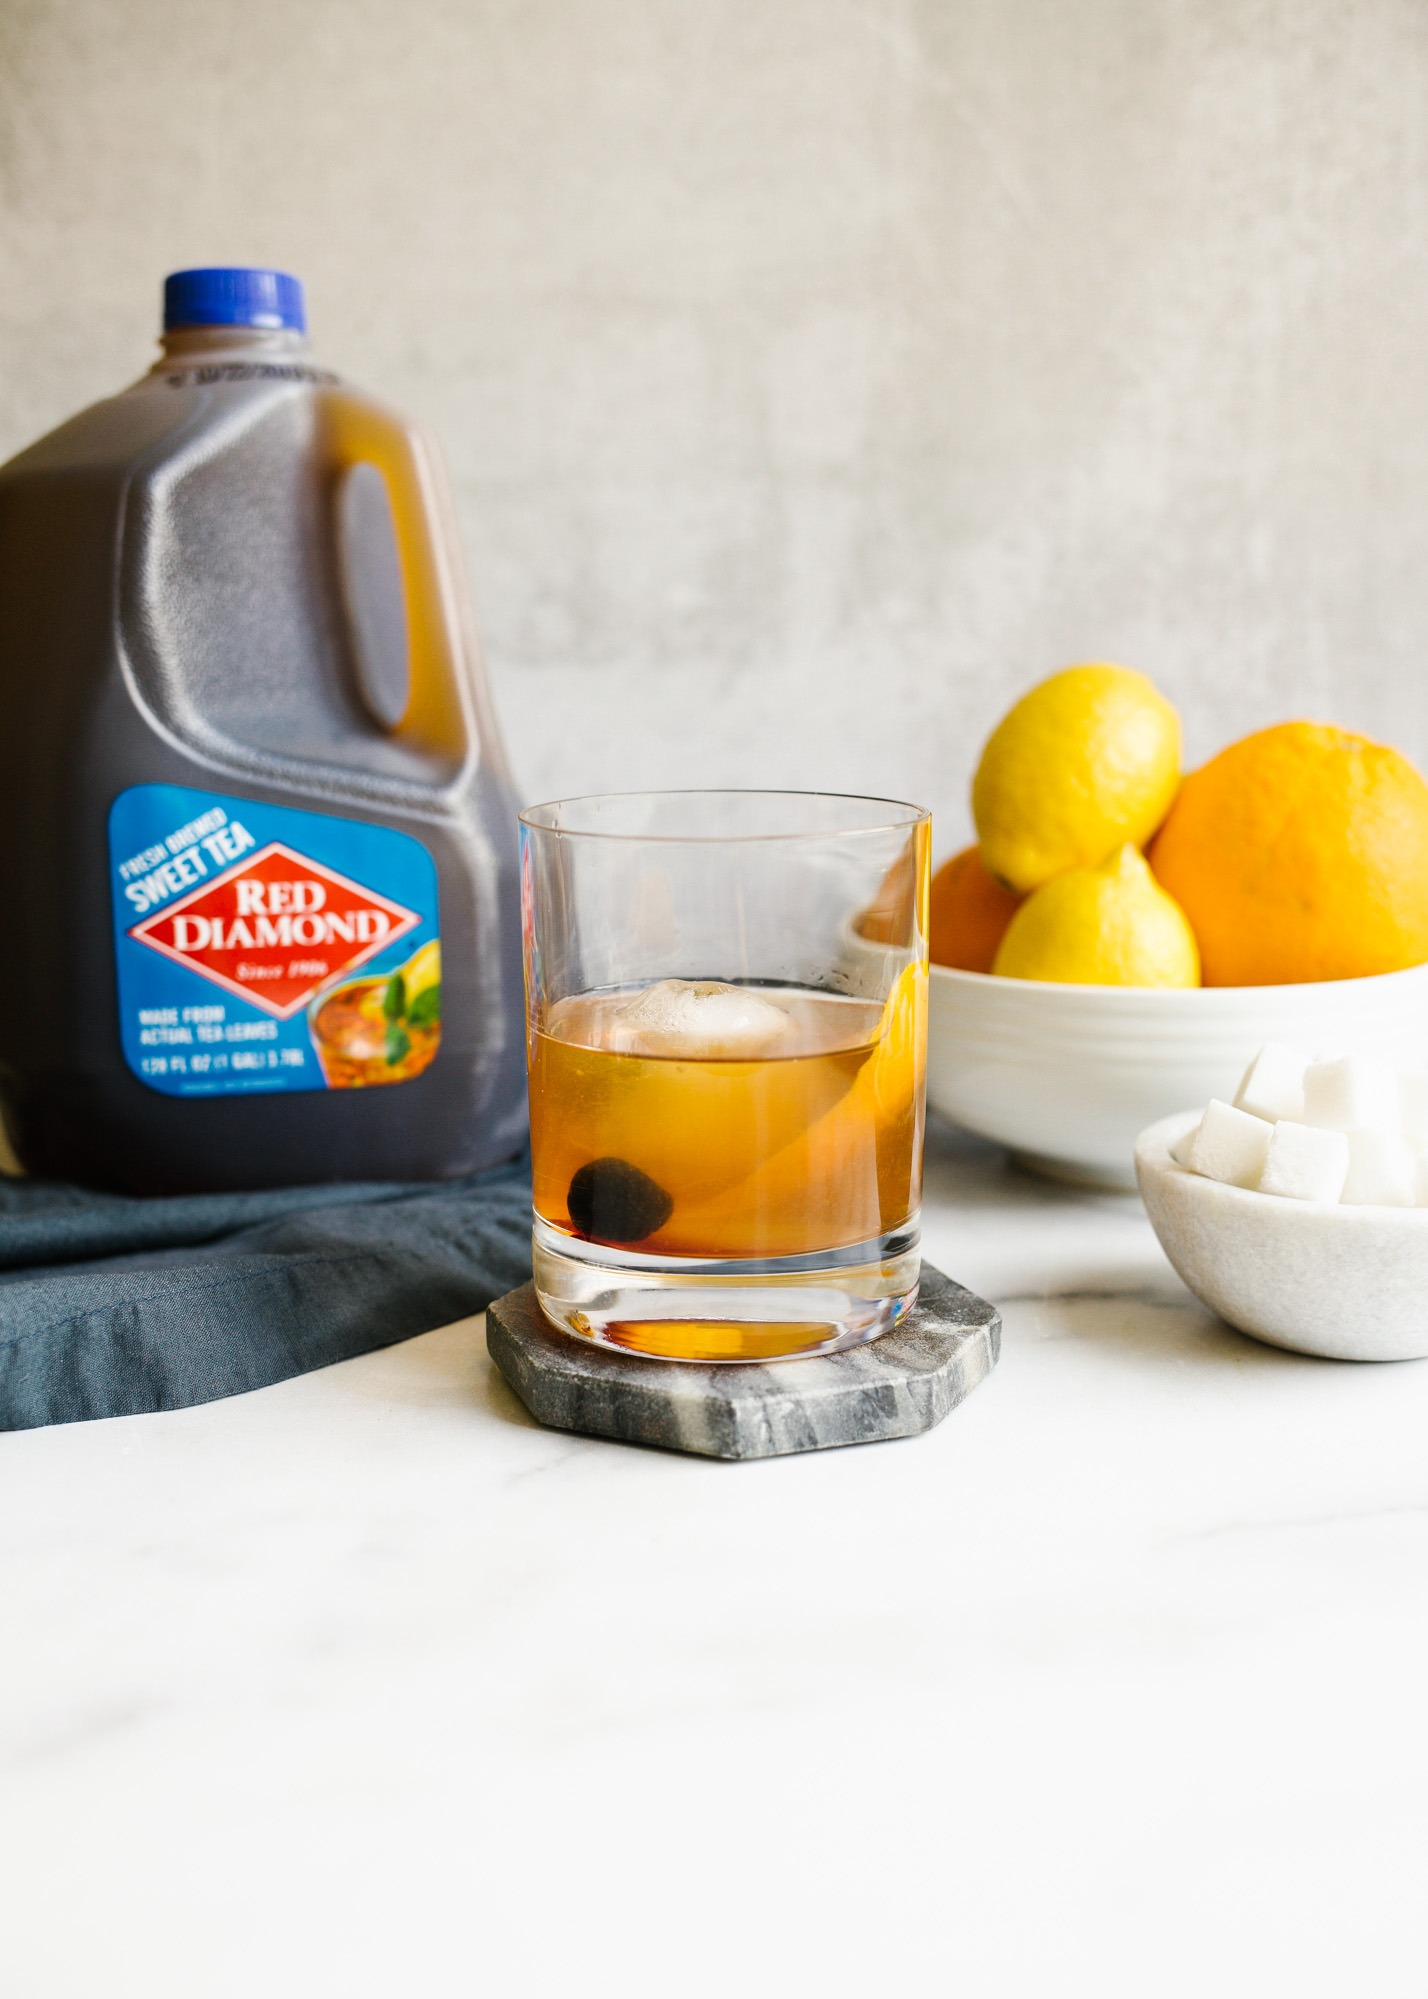 Sweet Tea Old Fashioned by Wood and Spoon. This is the classic Kentucky bourbon cocktail made with orange bitters, whiskey, and just a smidge of ready to drink sweet tea. Make this in a batch for friends as a party beverage or drink as a great end of day cocktail. This is a southern spin on the original drink! Read more on thewoodandspoon.com